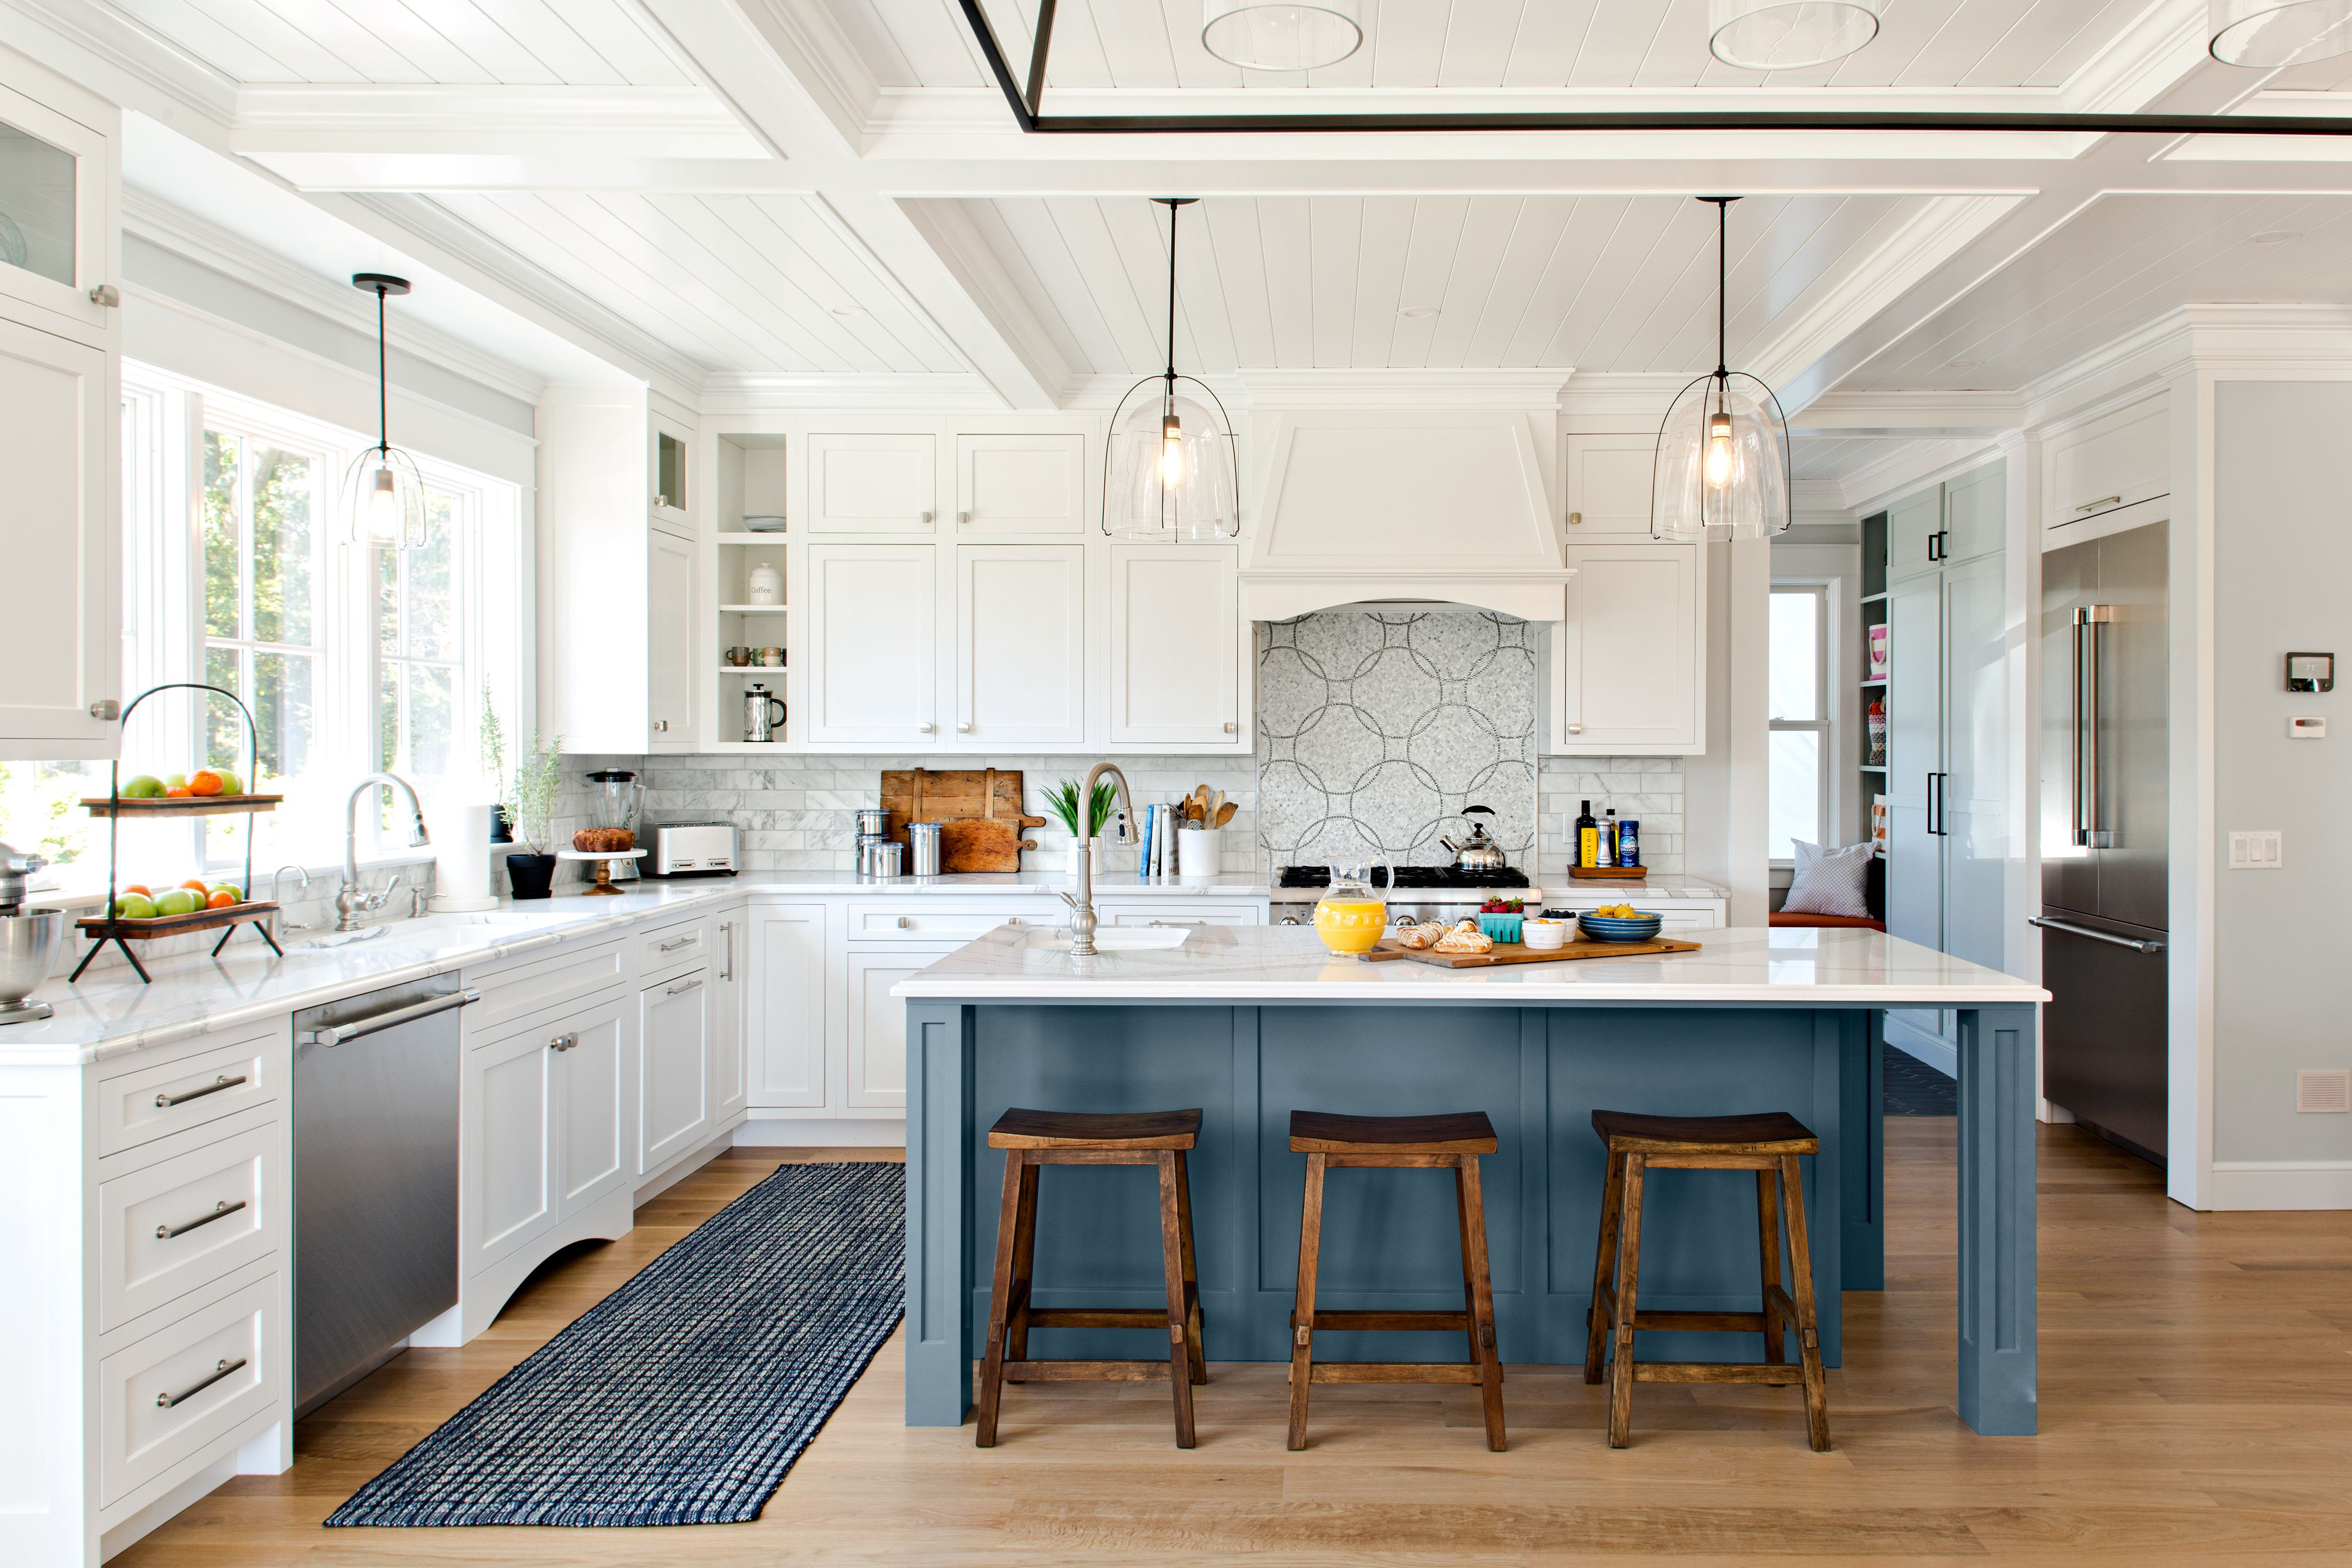 Pro Tips For Building A Better Kitchen Island In 2020 Building A Kitchen Kitchen Remodel Small Kitchen Island With Seating